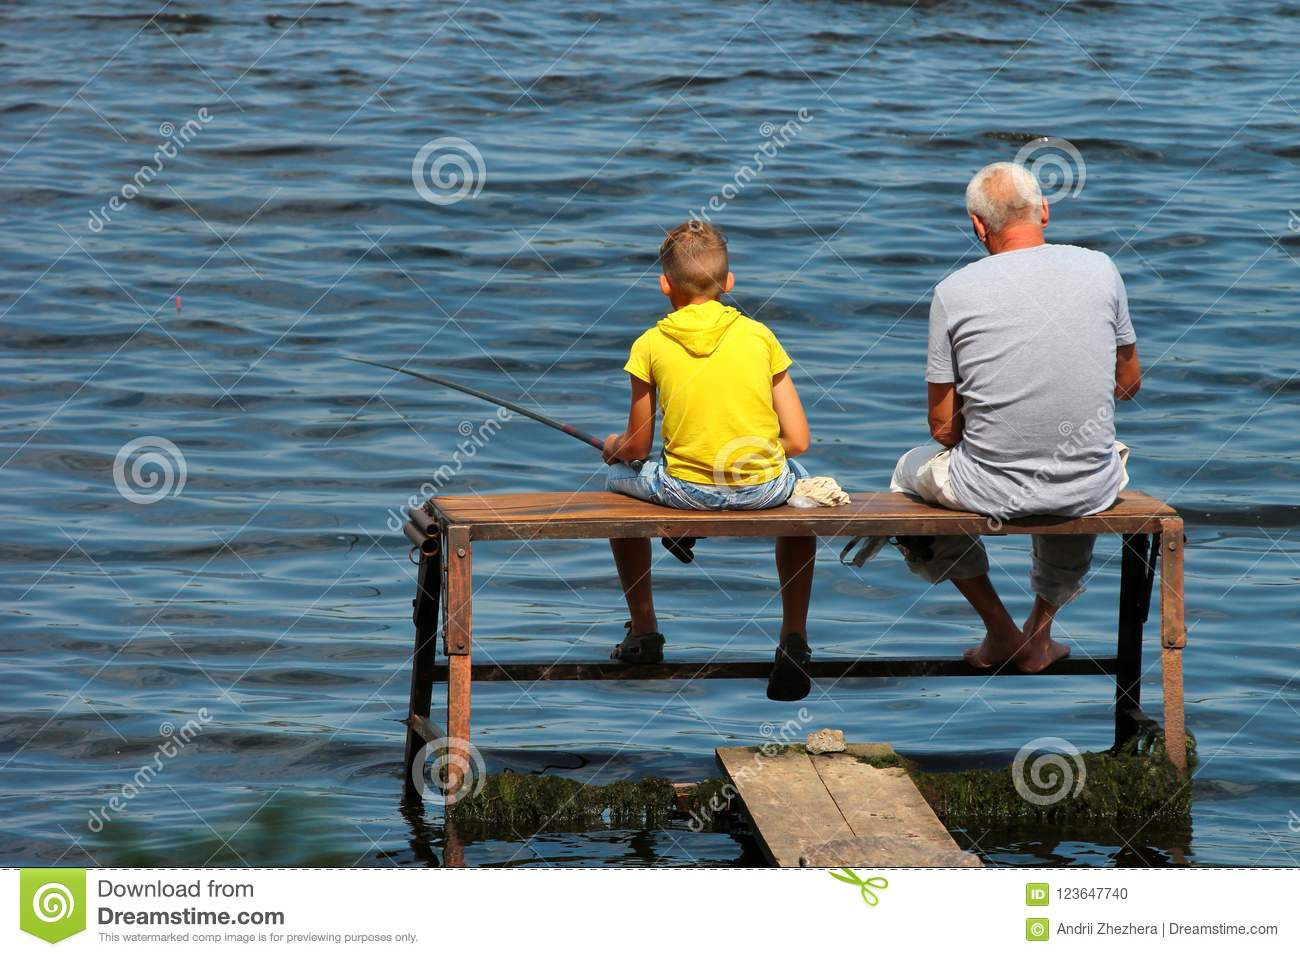 Old man and a boy sit on a self-made fishing platform with rods